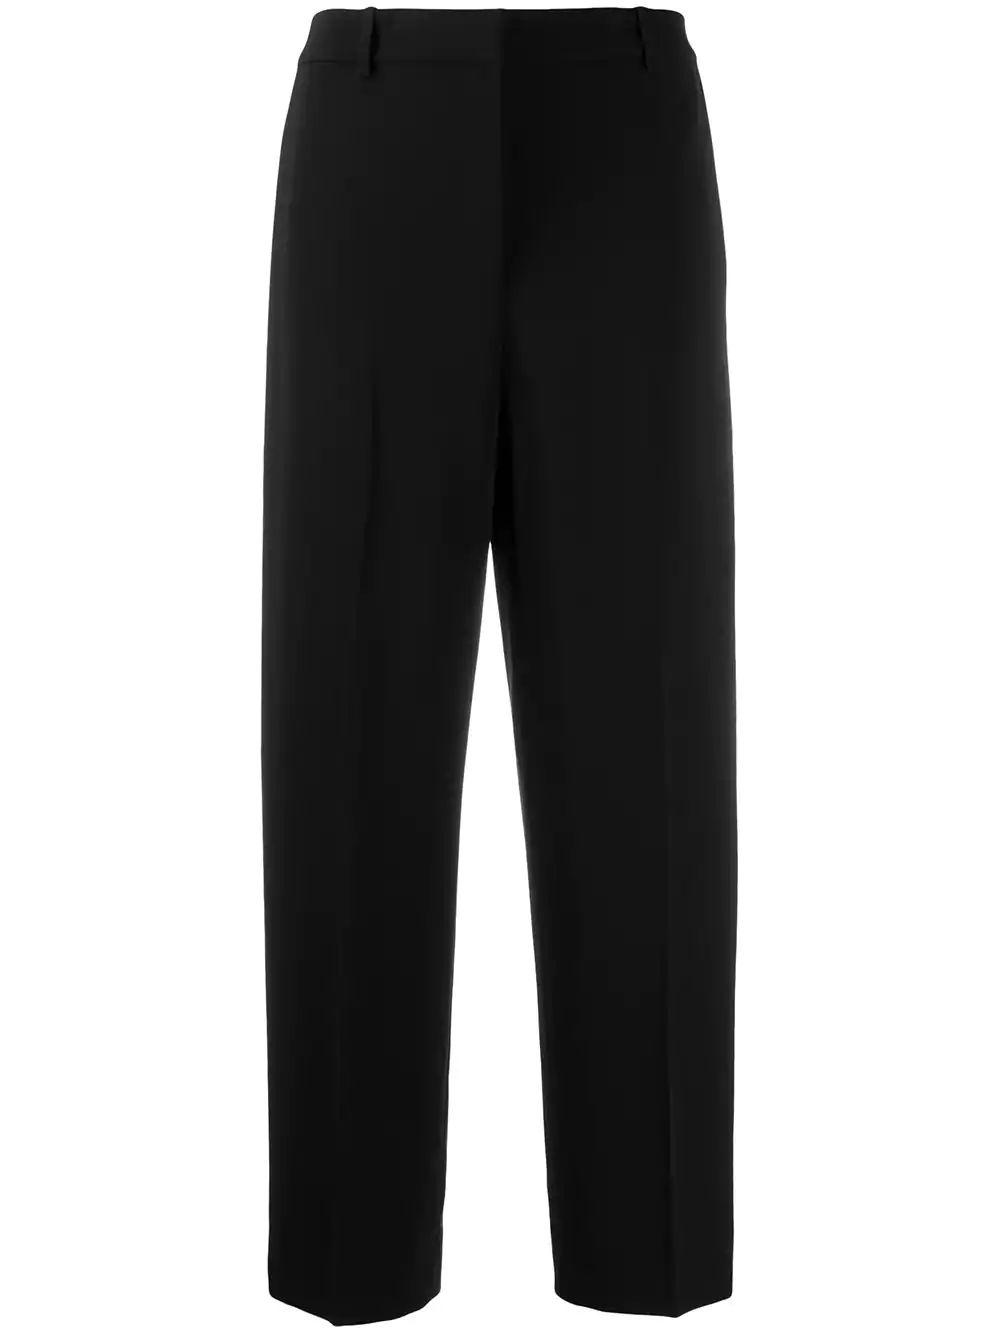 Classic Crepe High Waist Straight Trouser Item # J0609211